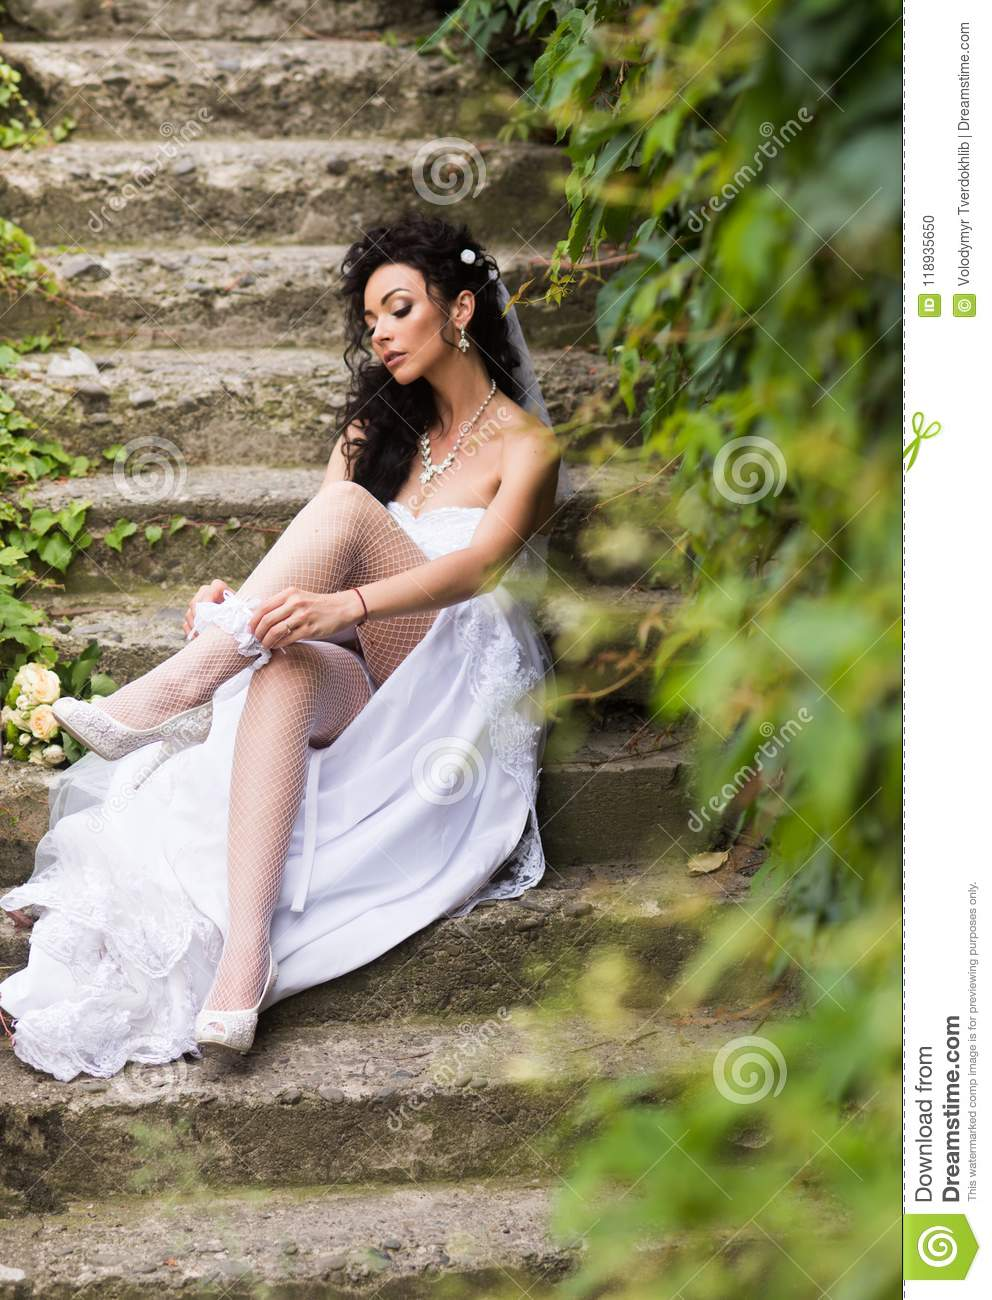 90345f251 Woman wear lace garter on leg. Girl with bridal makeup and hairstyle. Bride  in white dress sit on steps outdoor. Wedding fashion and accessory.